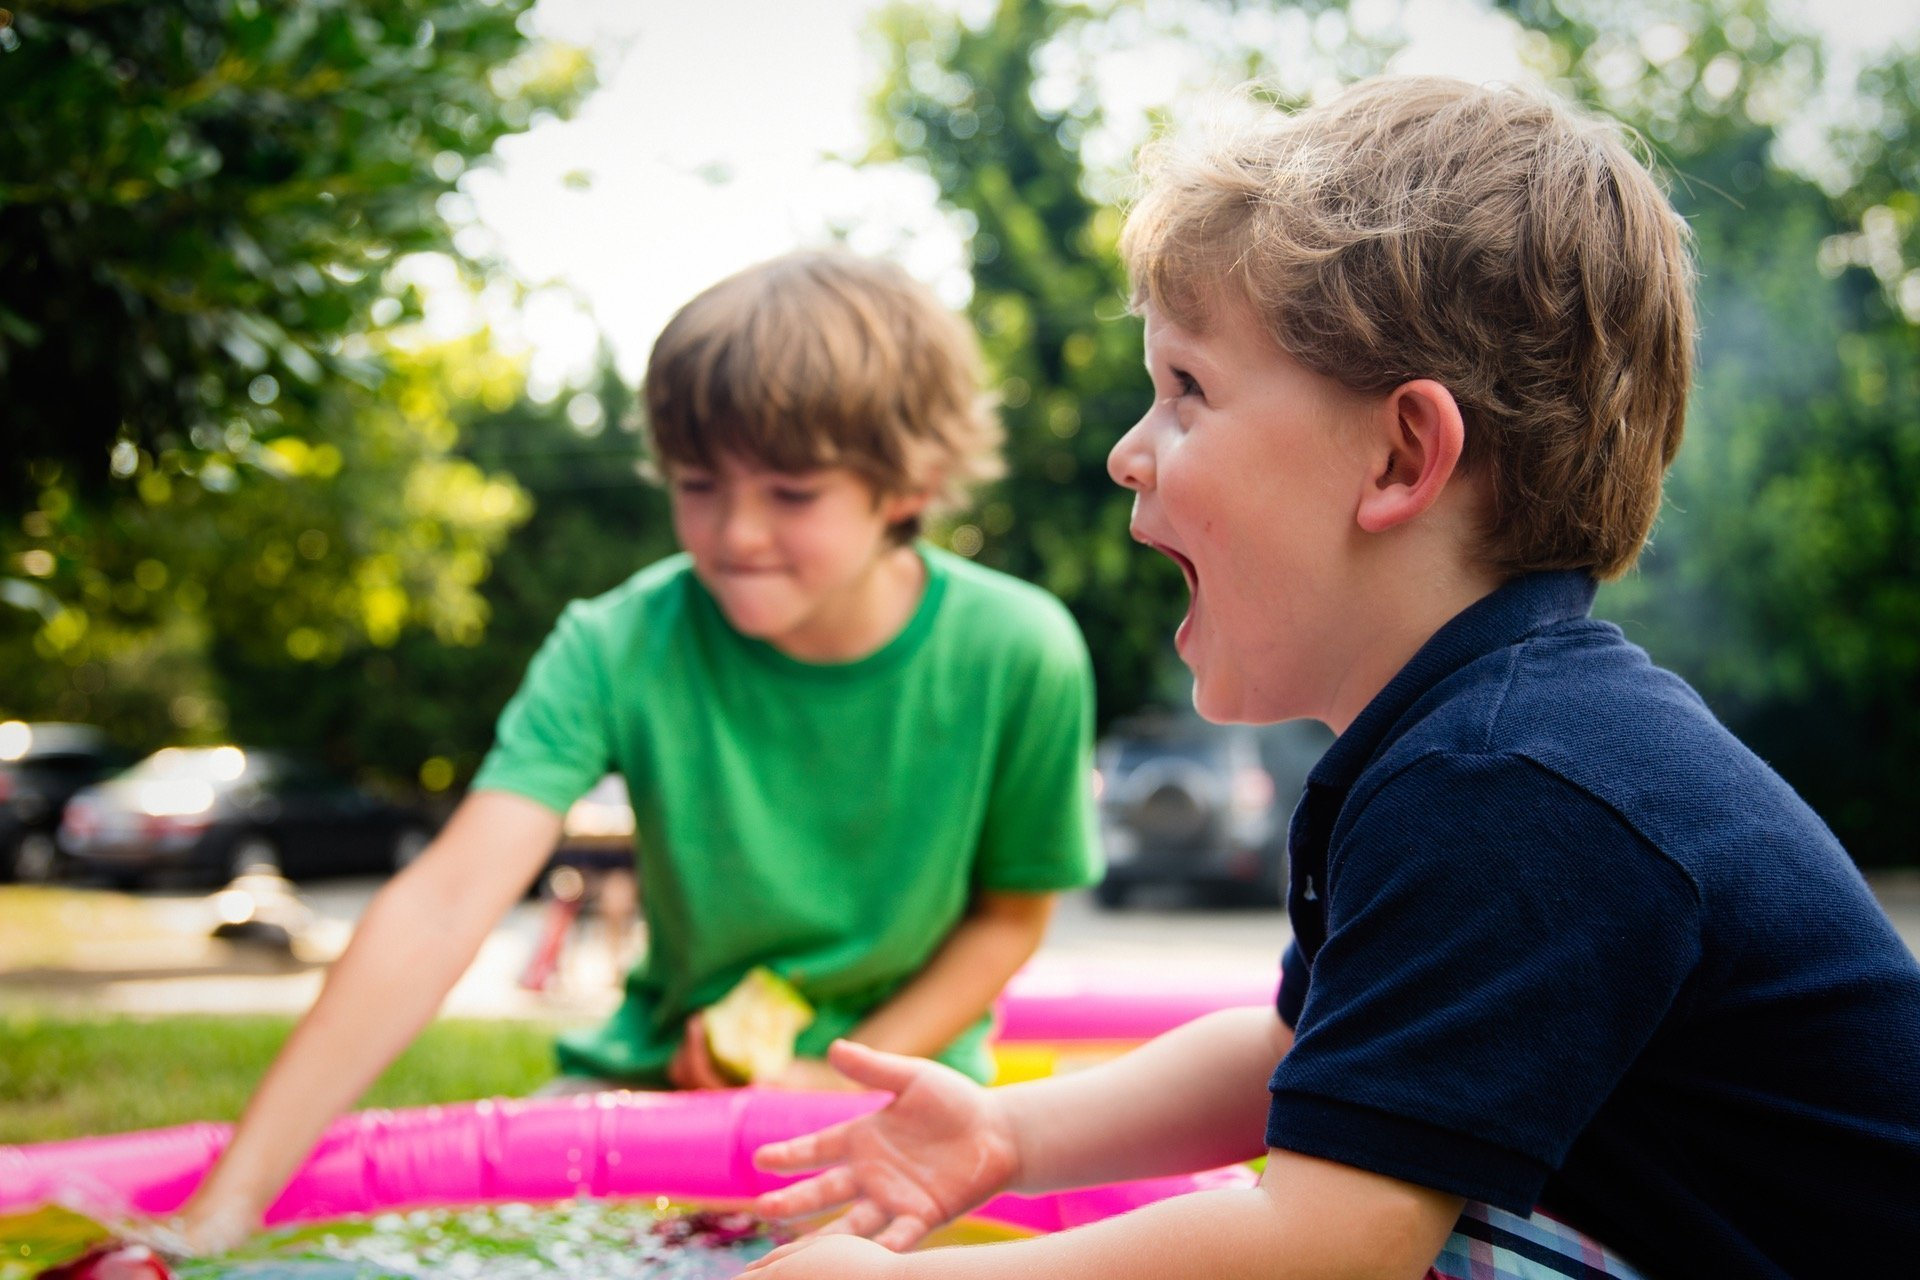 Playdate for Kids with Autism - World Autism Awareness Week - KidsKintha -Image 1